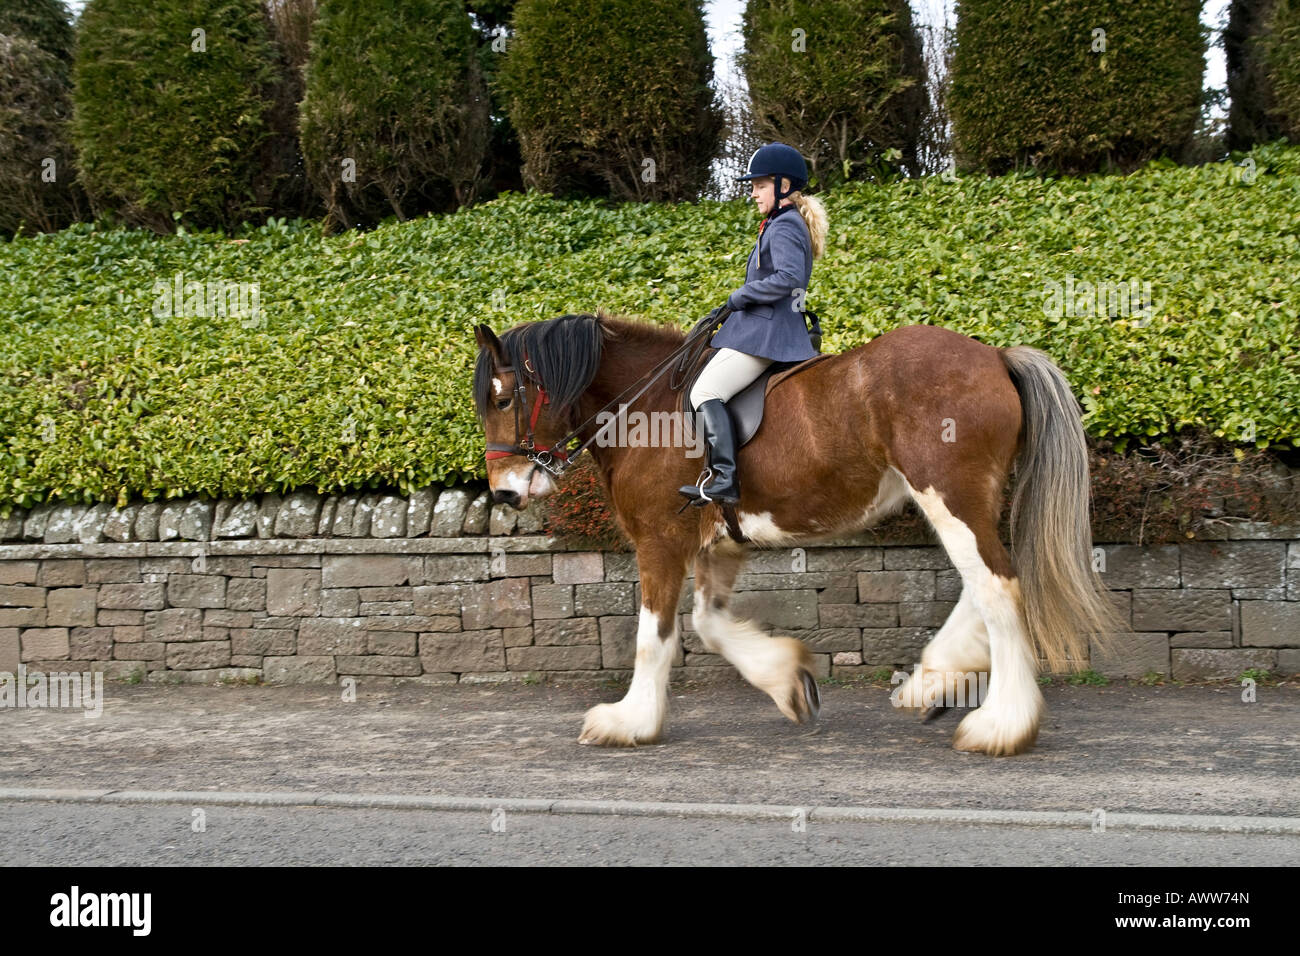 """Woman equestrian rider on horseback parading her Clydesdale horse along the sidewalk in """"Coupar Angus"""" Scotland Stock Photo"""